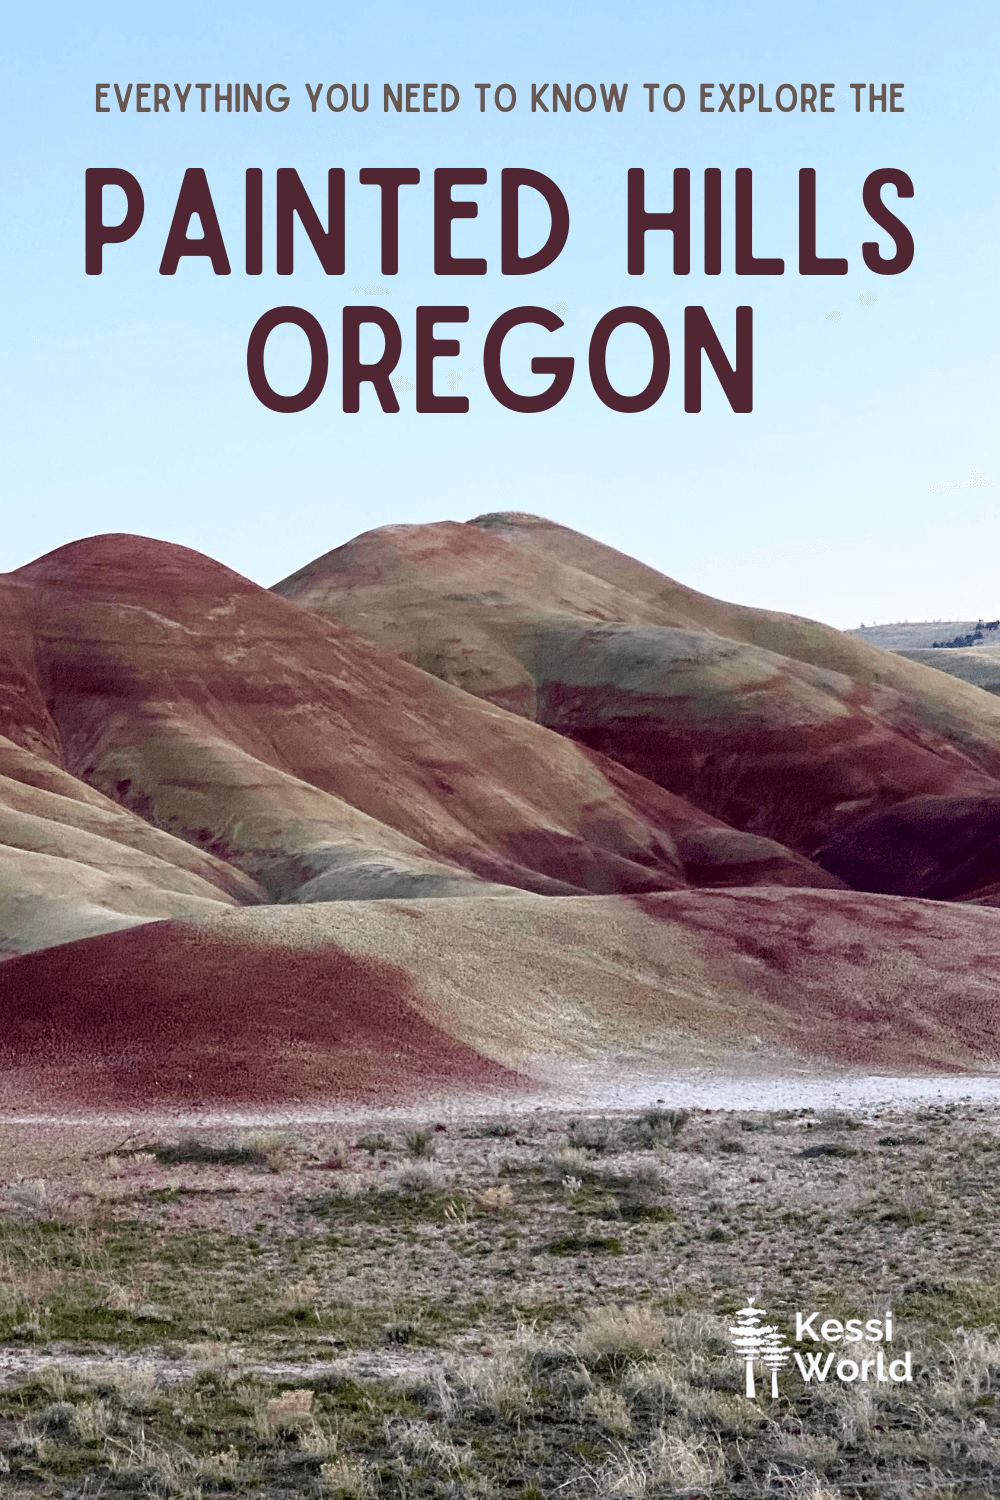 This Pinterest Pin shows a scene with vibrant reds and yellows flowing in rolling mounds in the Painted Hills monument in Oregon.  The sky above is a clear blue.